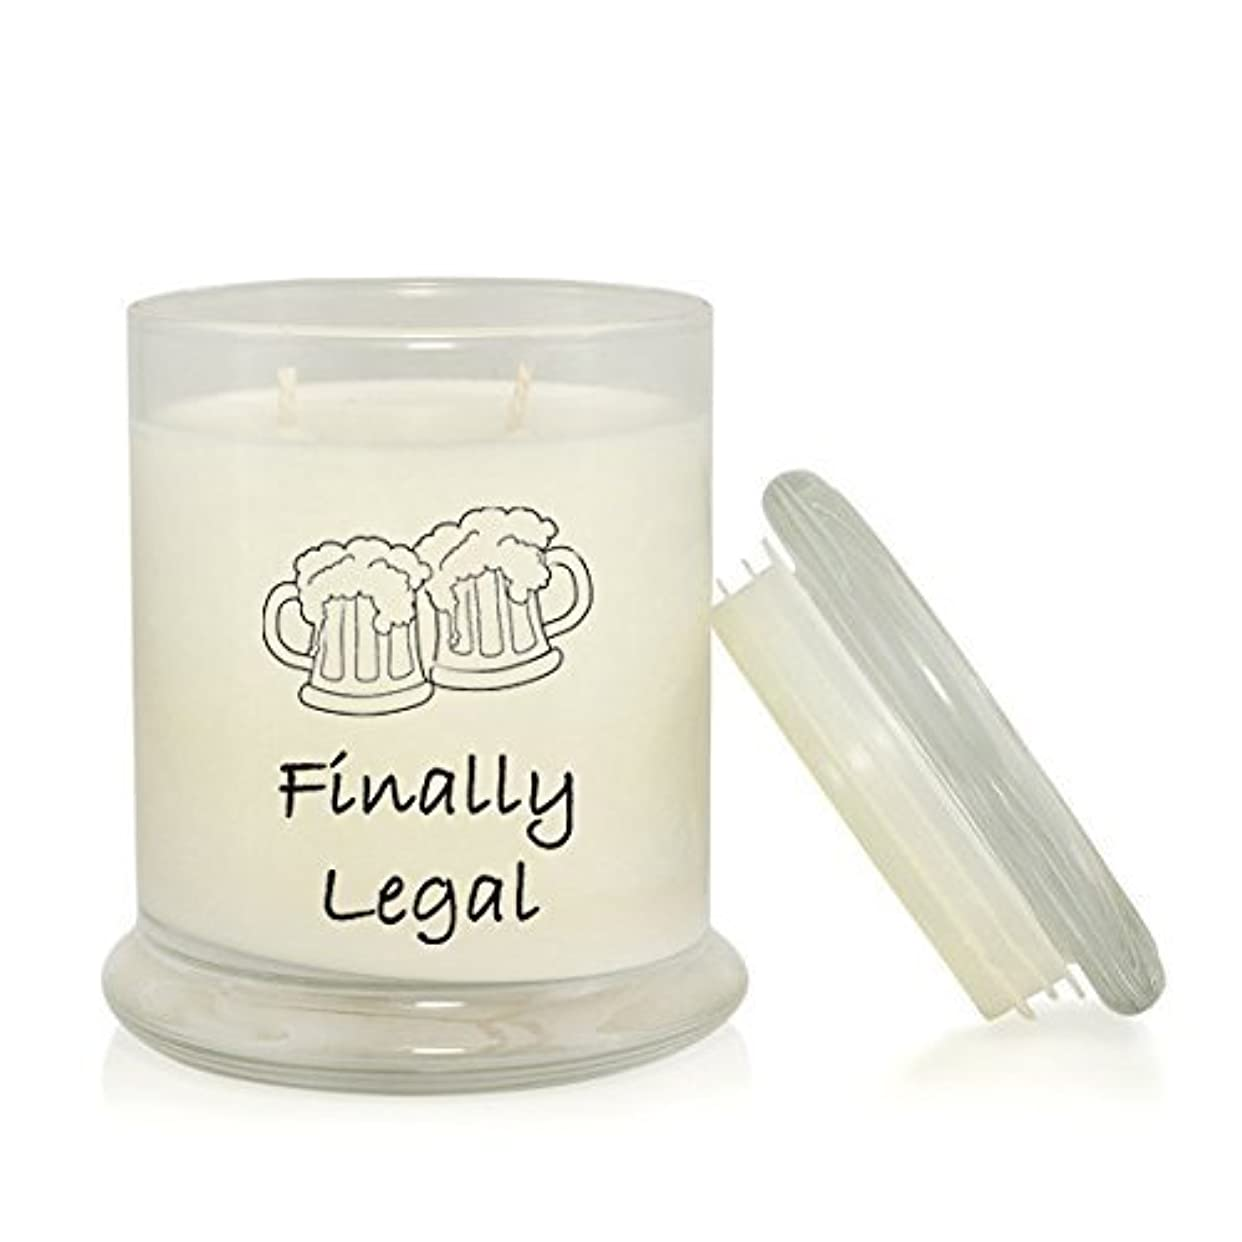 ごみベース起きているFinally Legal 8.5 oz. Soy Candle - 21st Birthday Gift - Caribbean Teakwood Scented [並行輸入品]